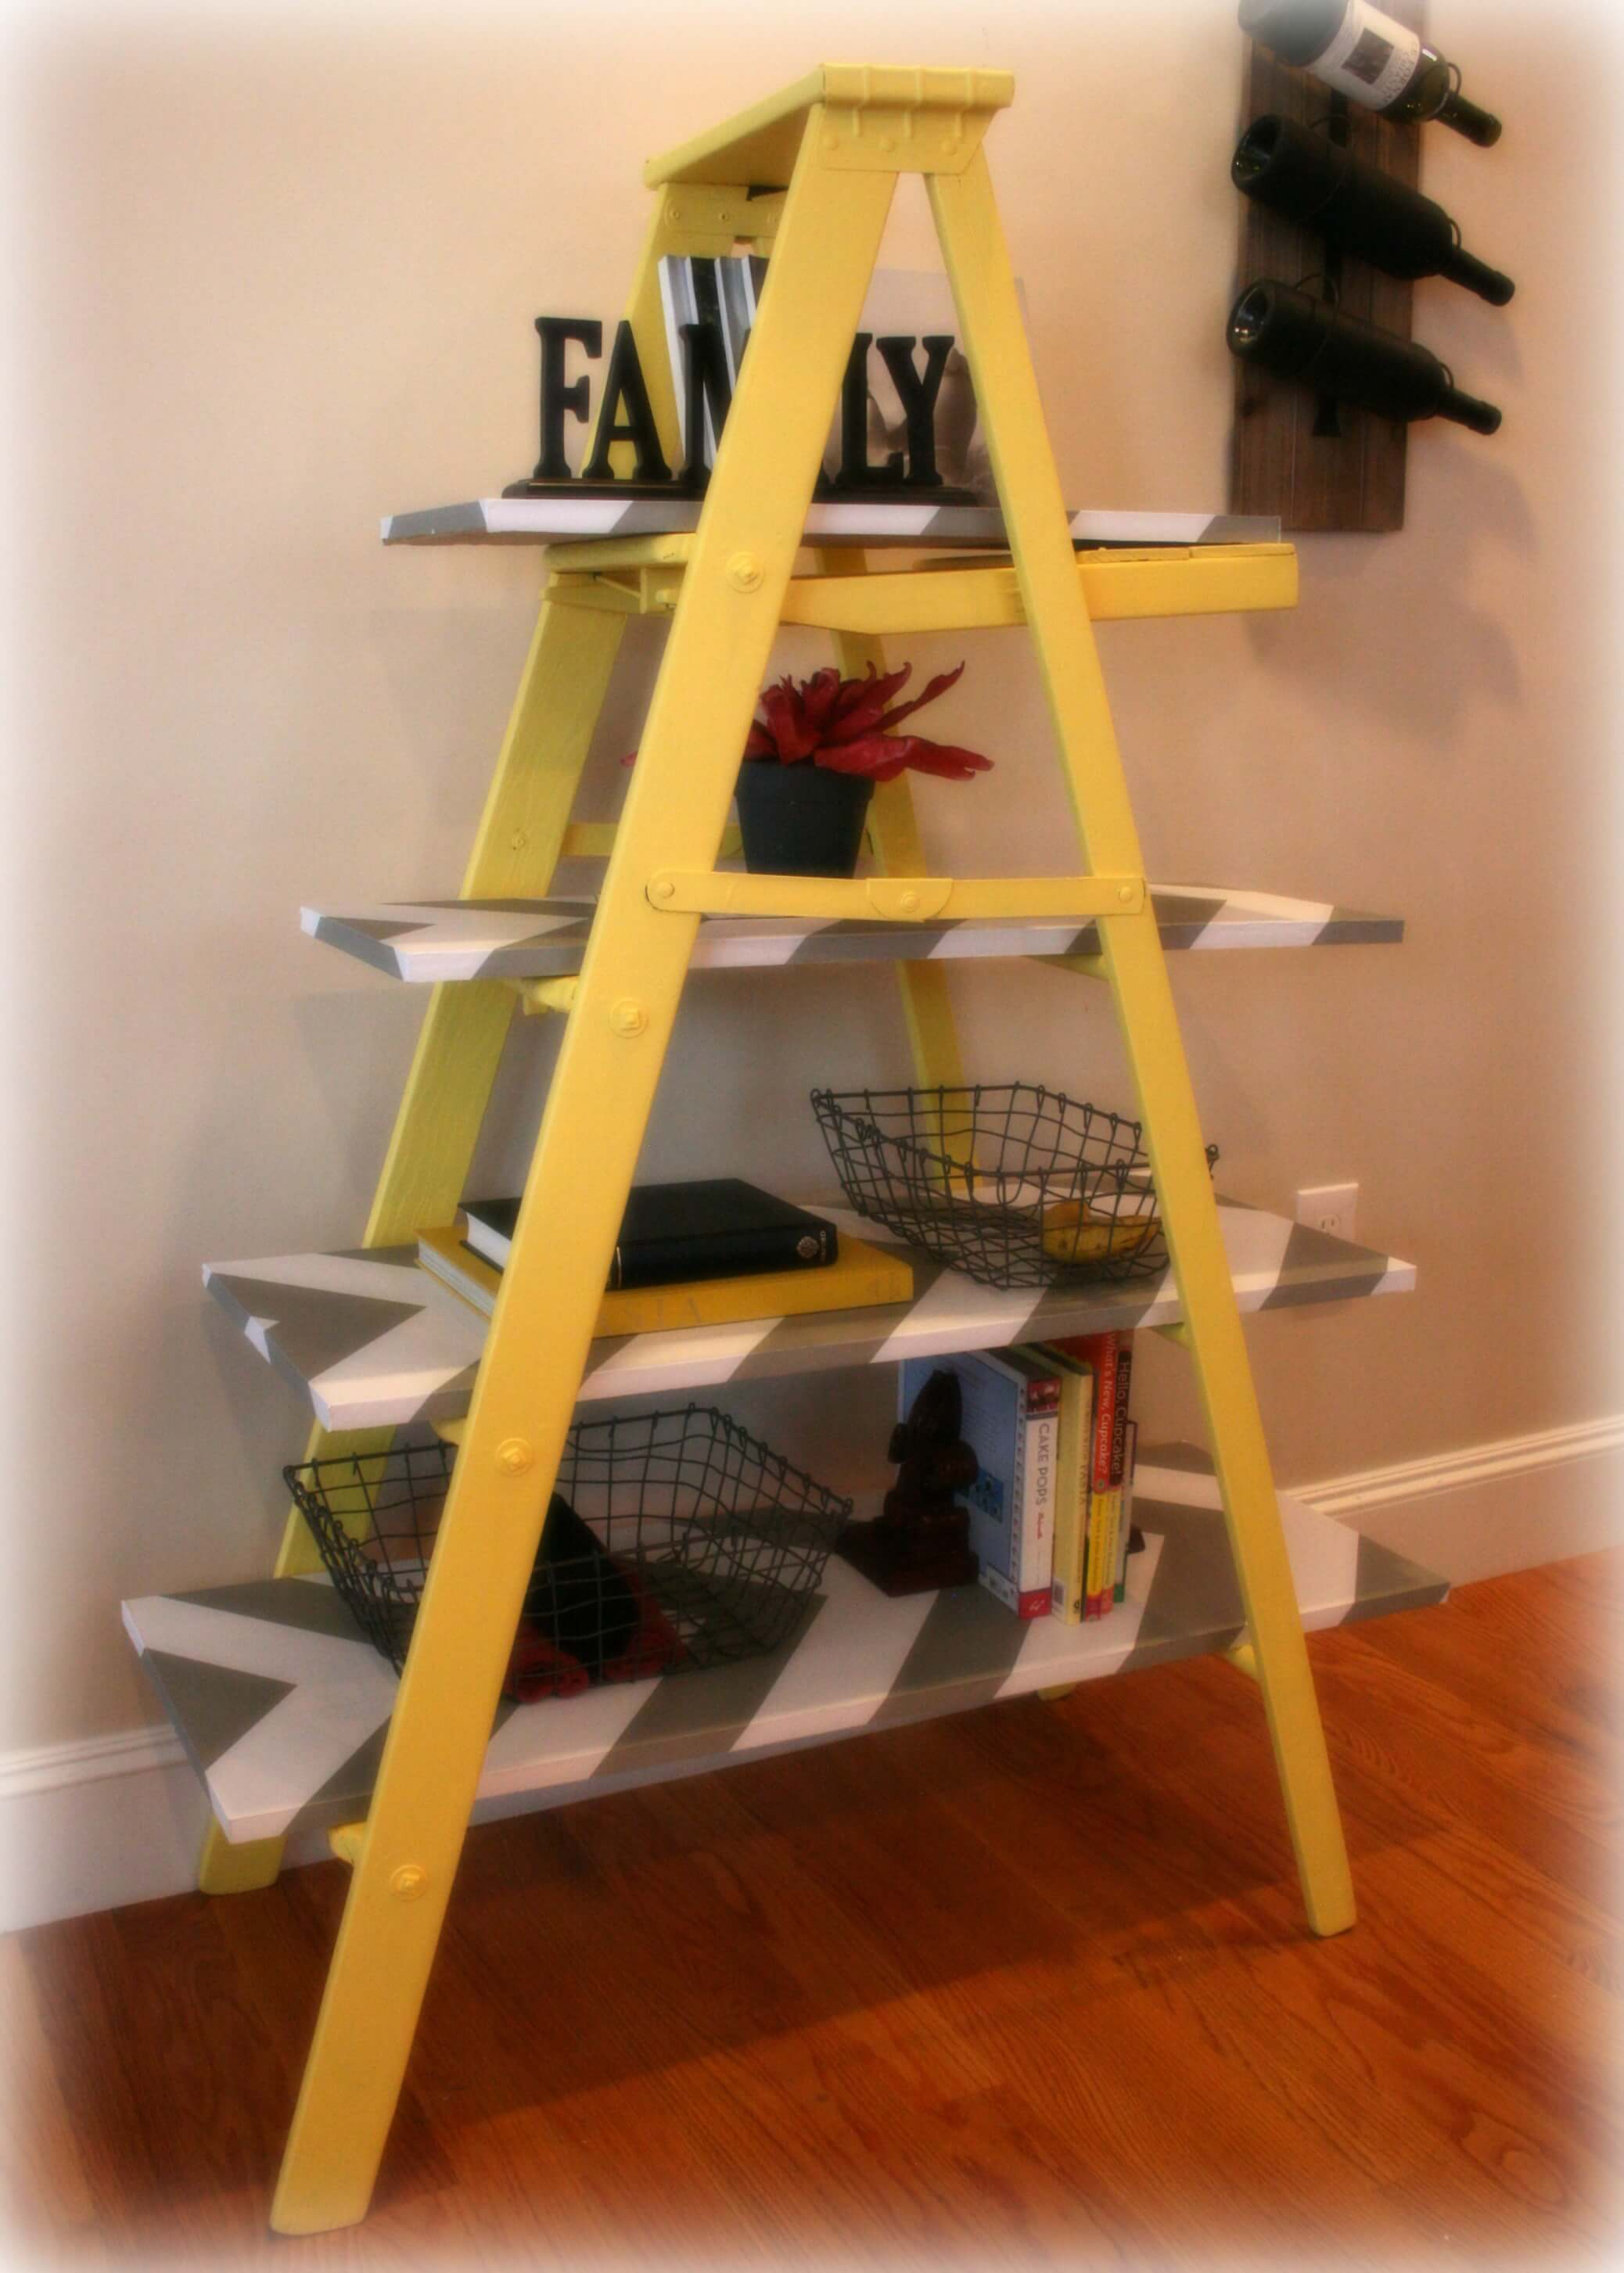 vintage yellow leaning ladder shelf